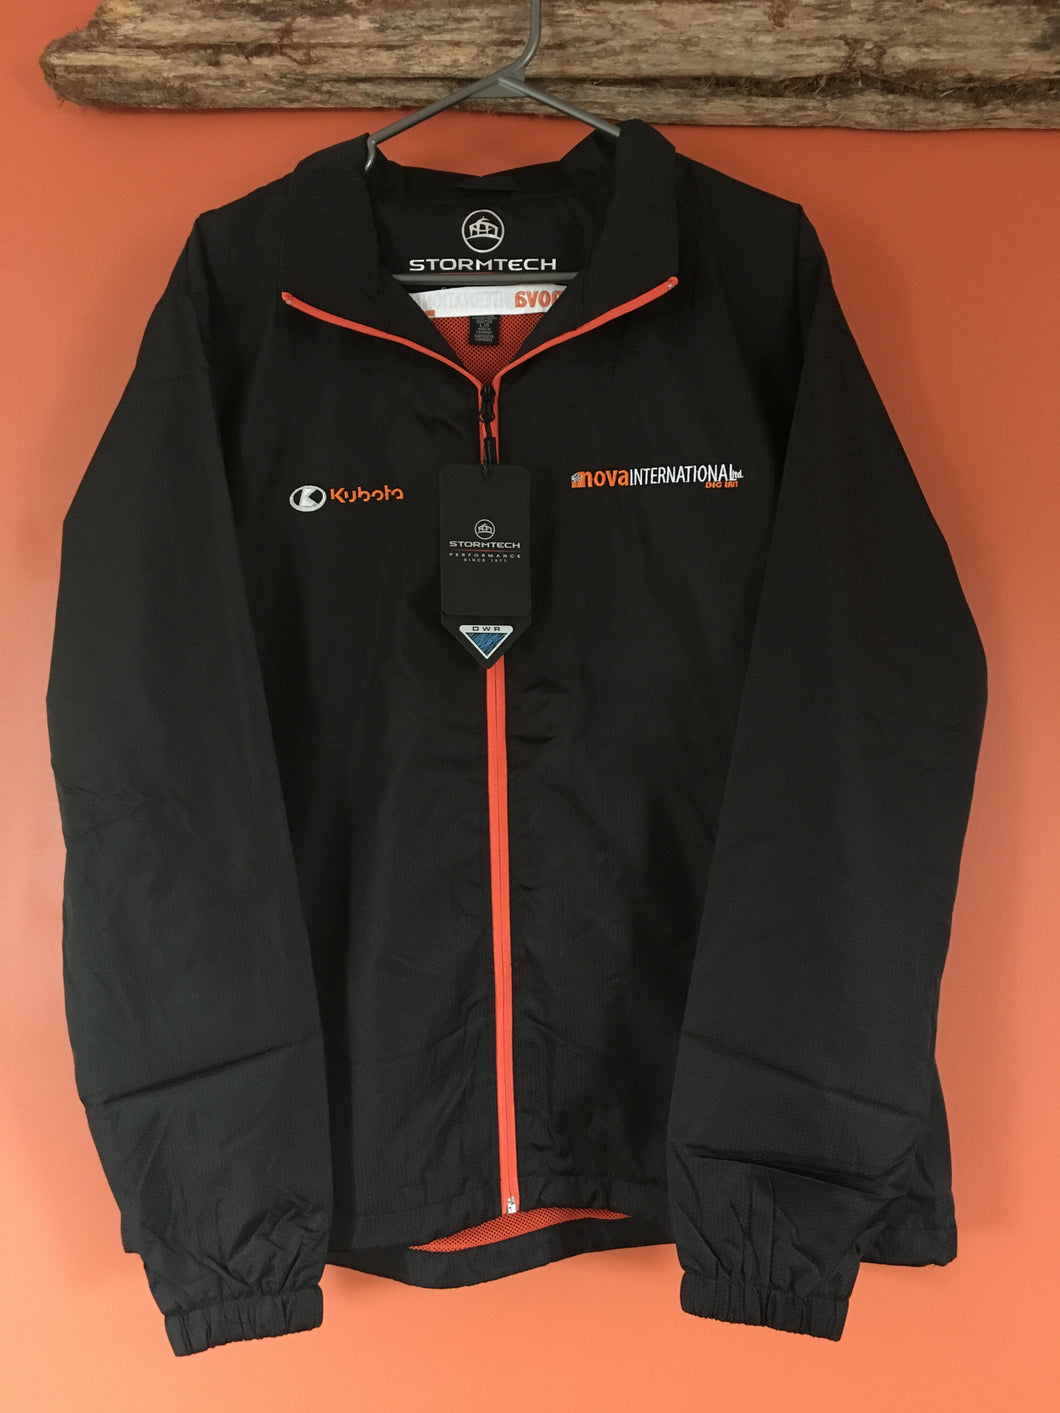 Nova Jacket by Stormtech